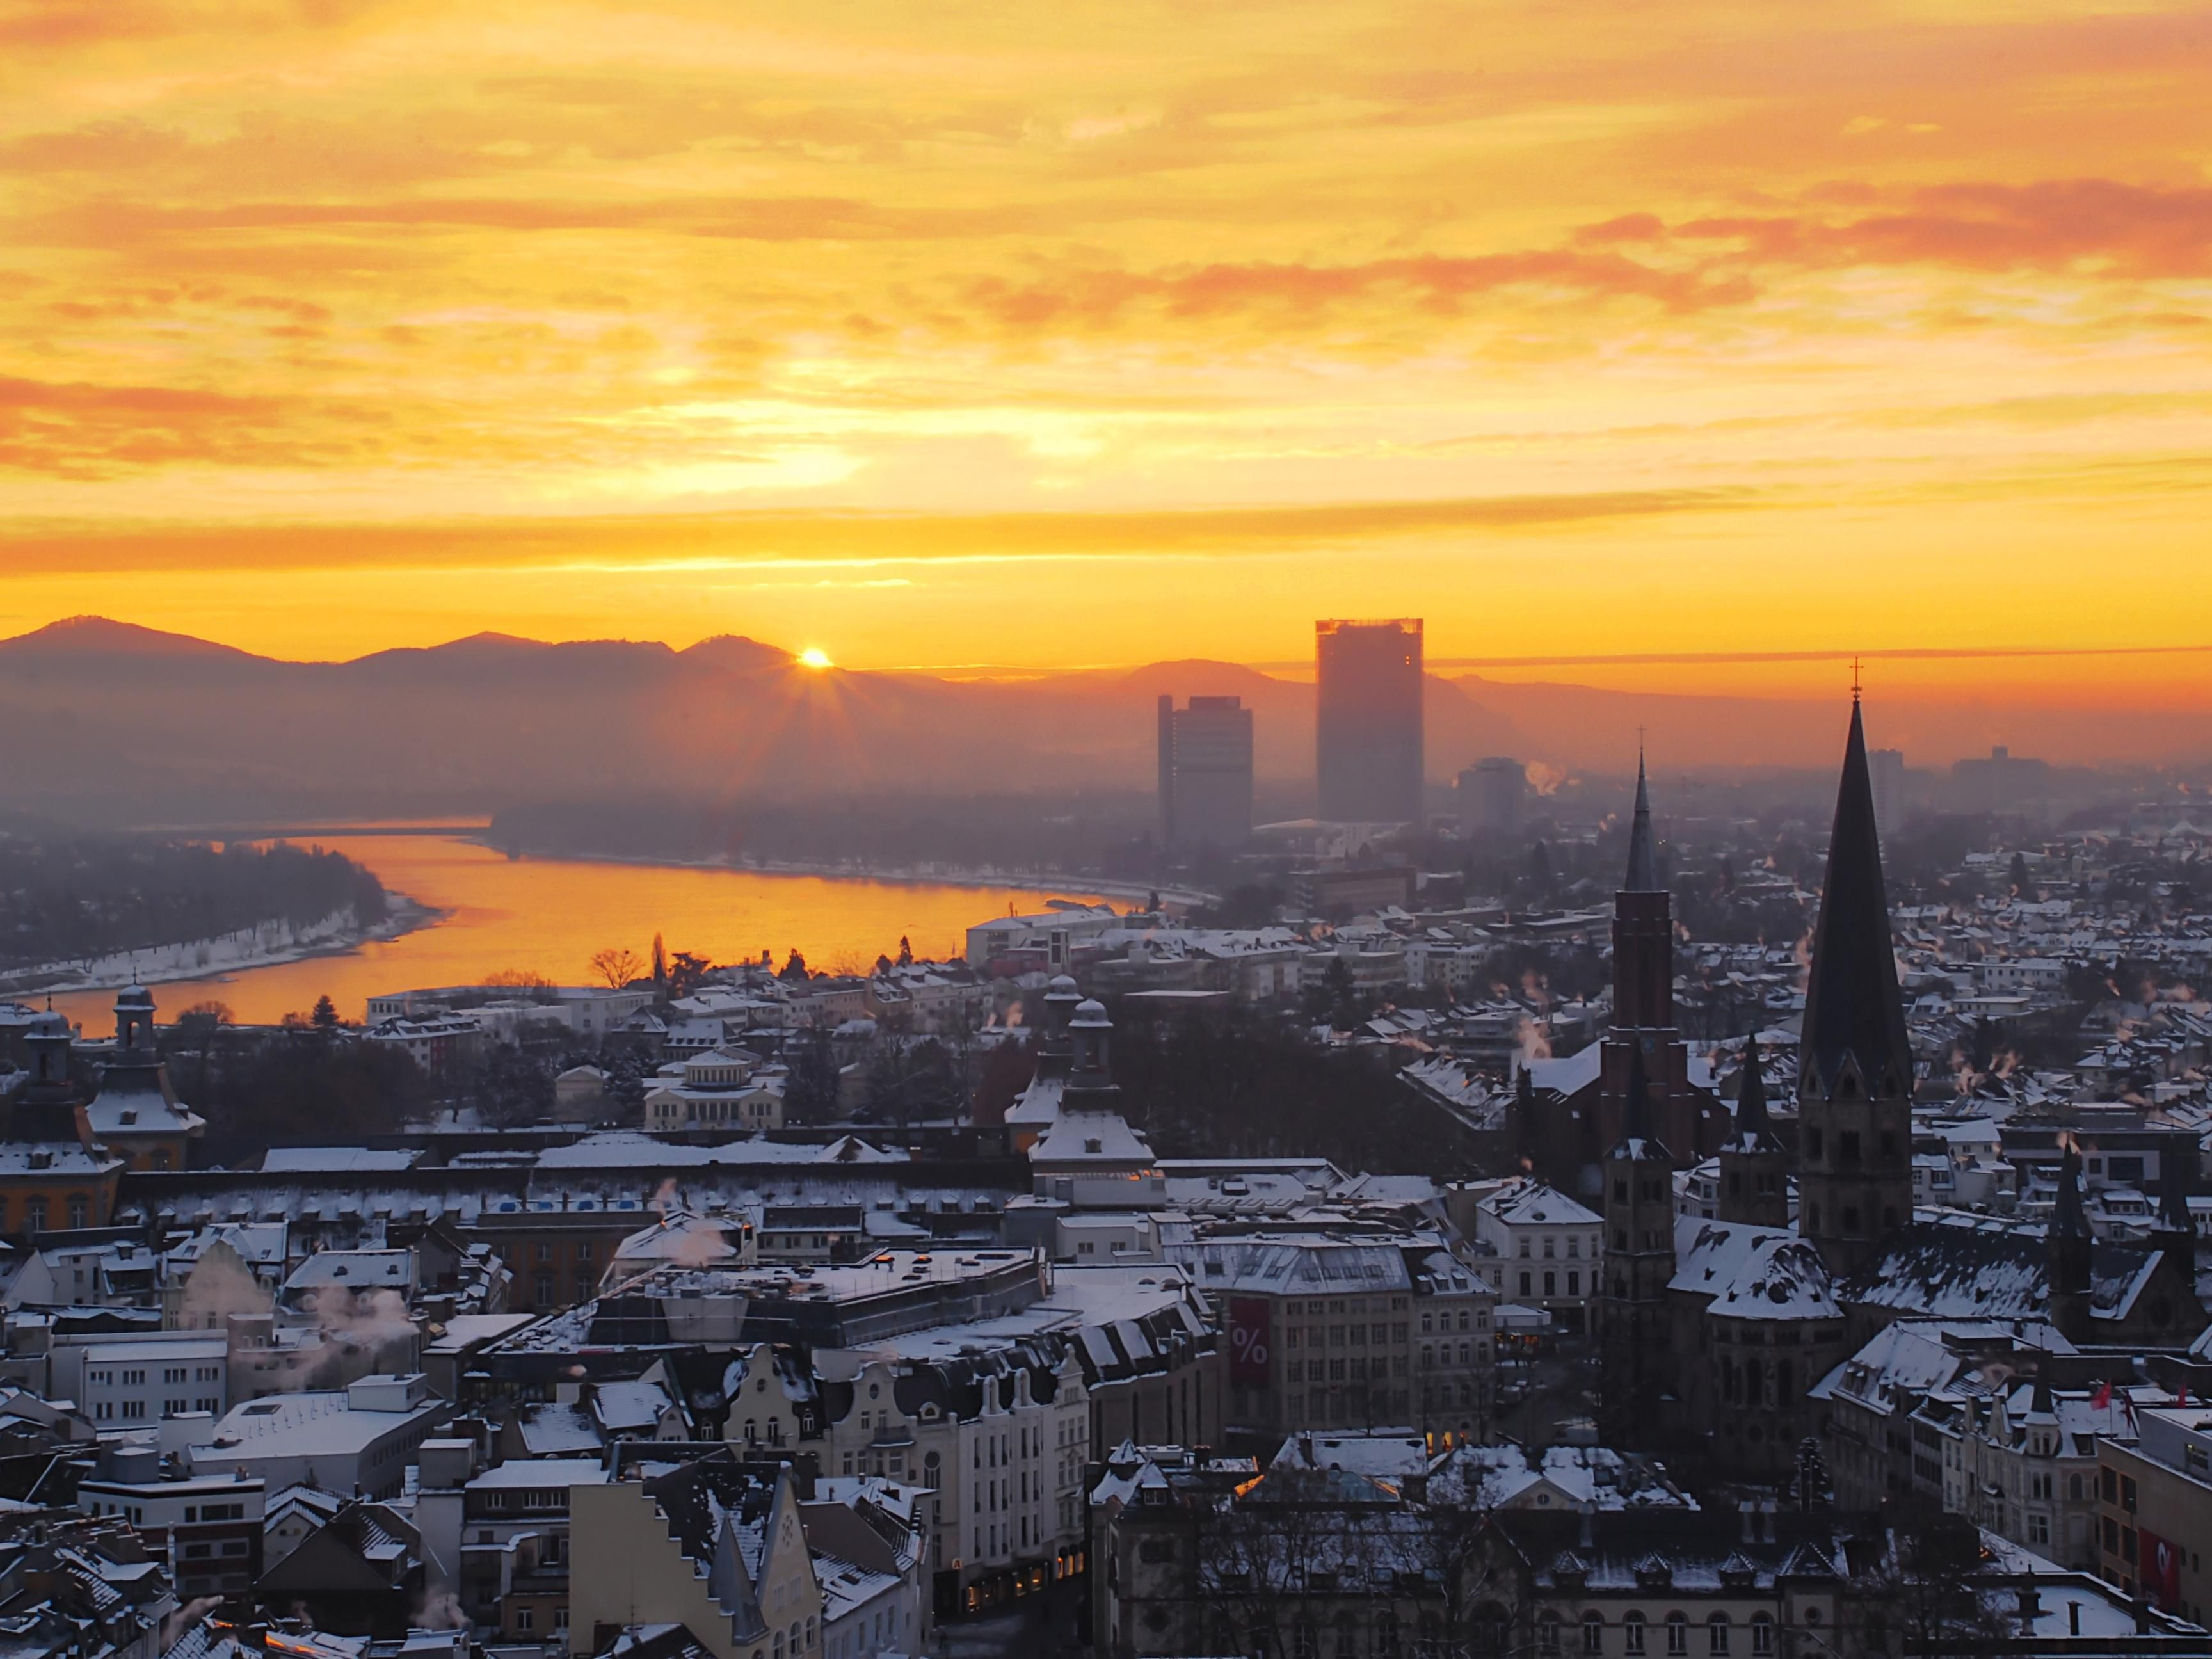 Sunrise over the city of Bonn - just 15km away from our hotel